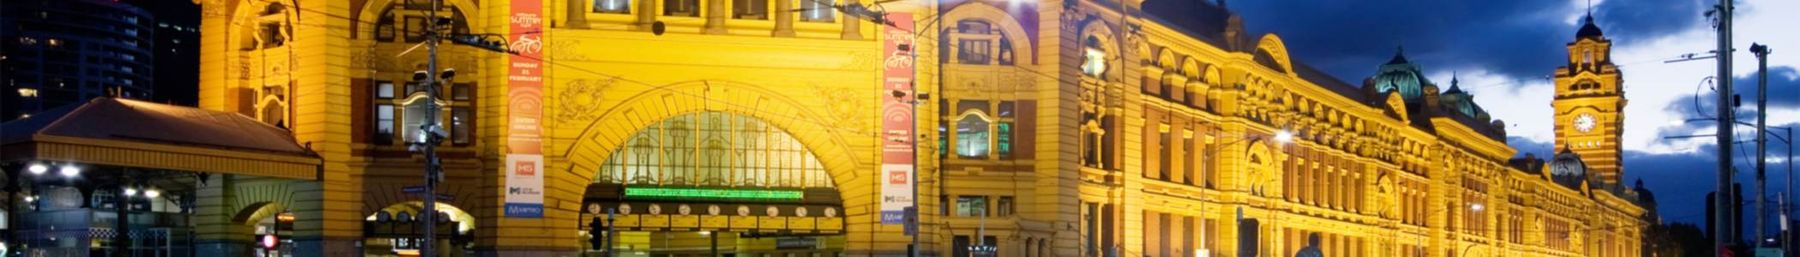 Flinders Street Station in the City Centre by dusk